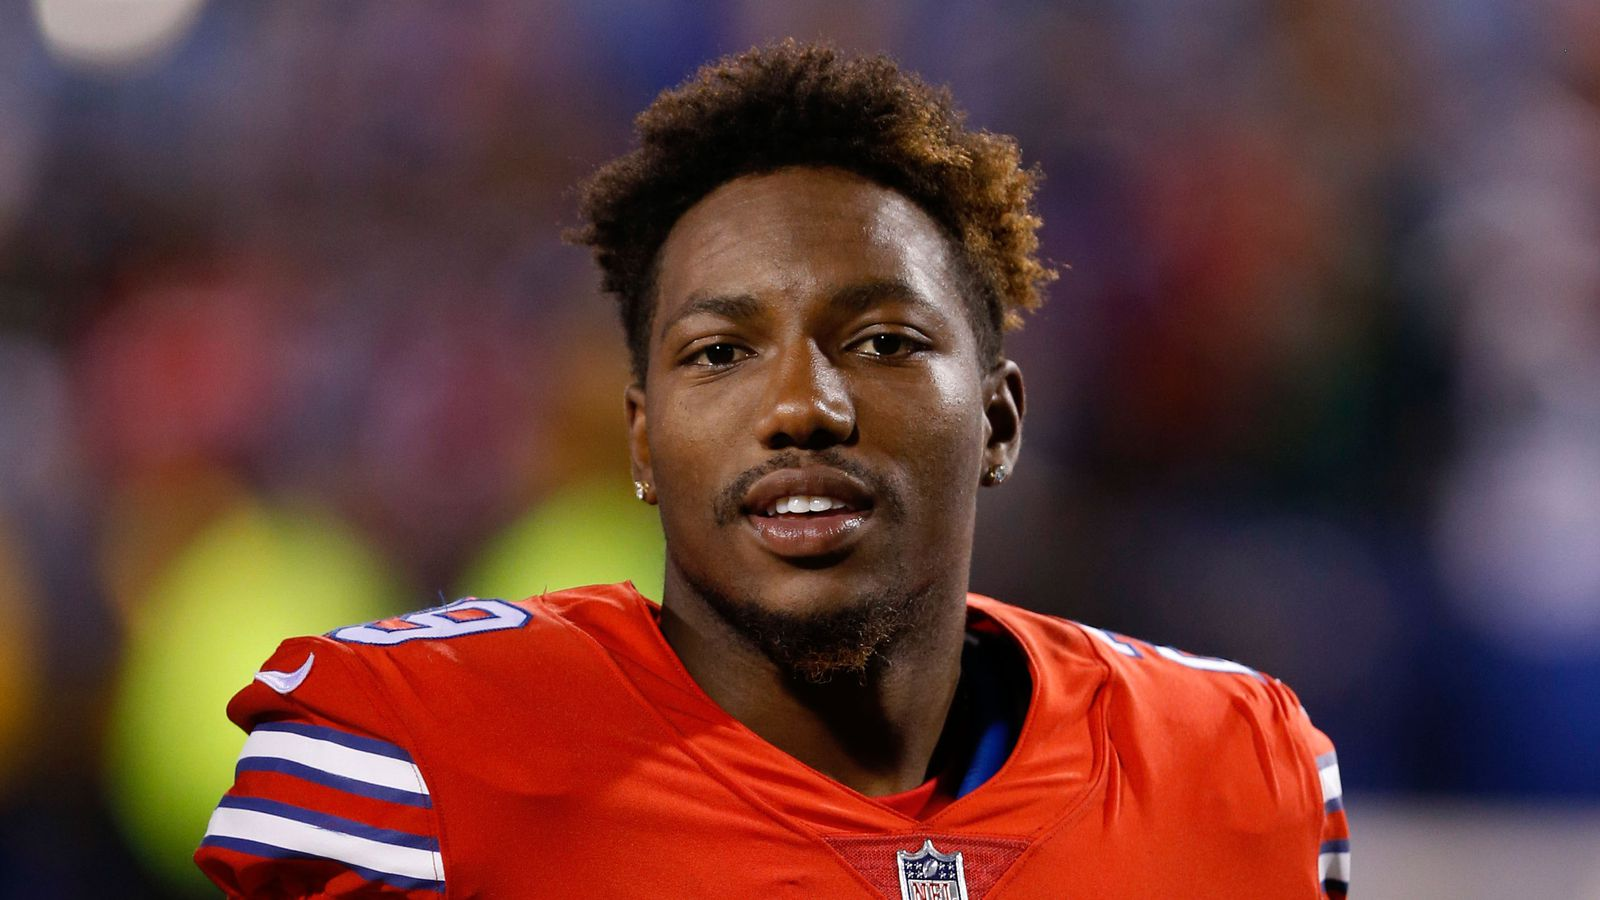 Kevon Seymour Usc Buffalo Bills c...